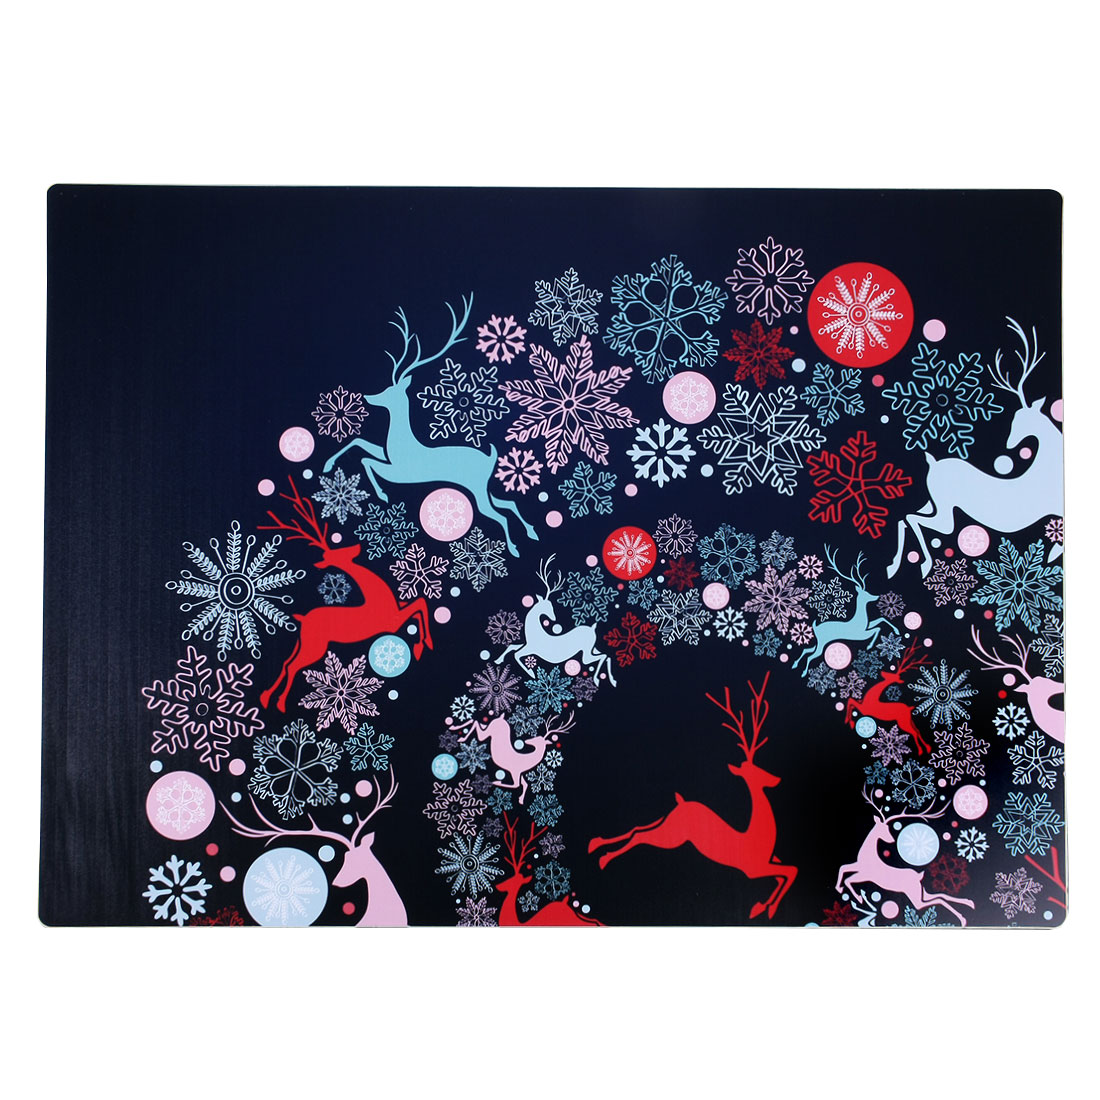 Colorful Snowflakes Deer Print Heat Resistant Dining Table Mat Placemat Cup Pad